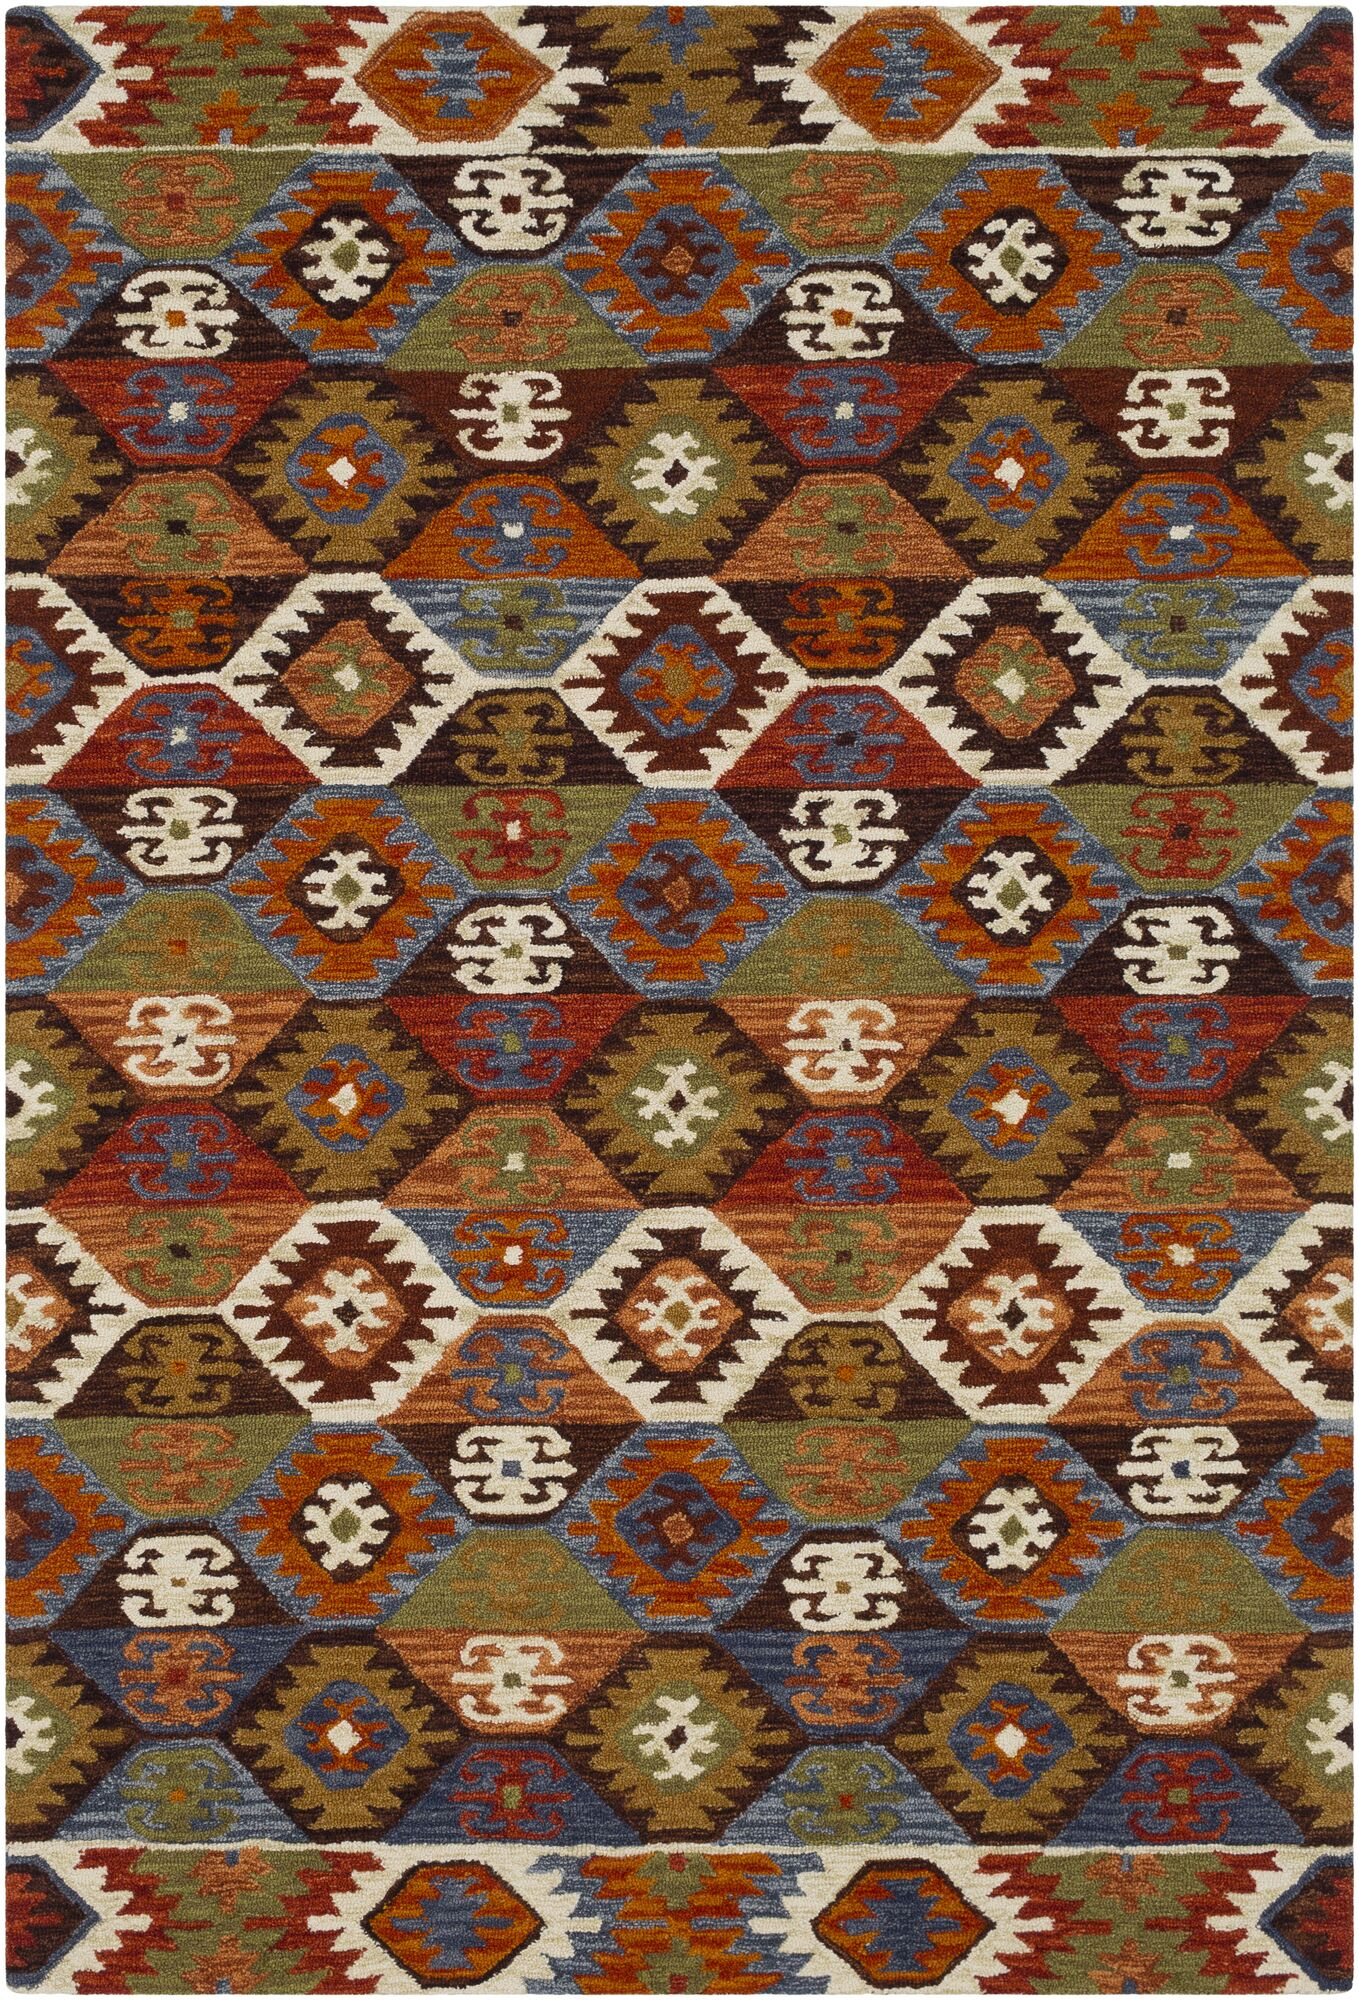 Morais Bohemian Hand Hooked Wool Dark Brown/Rust Area Rug Rug Size: Rectangle 5' x 7'6